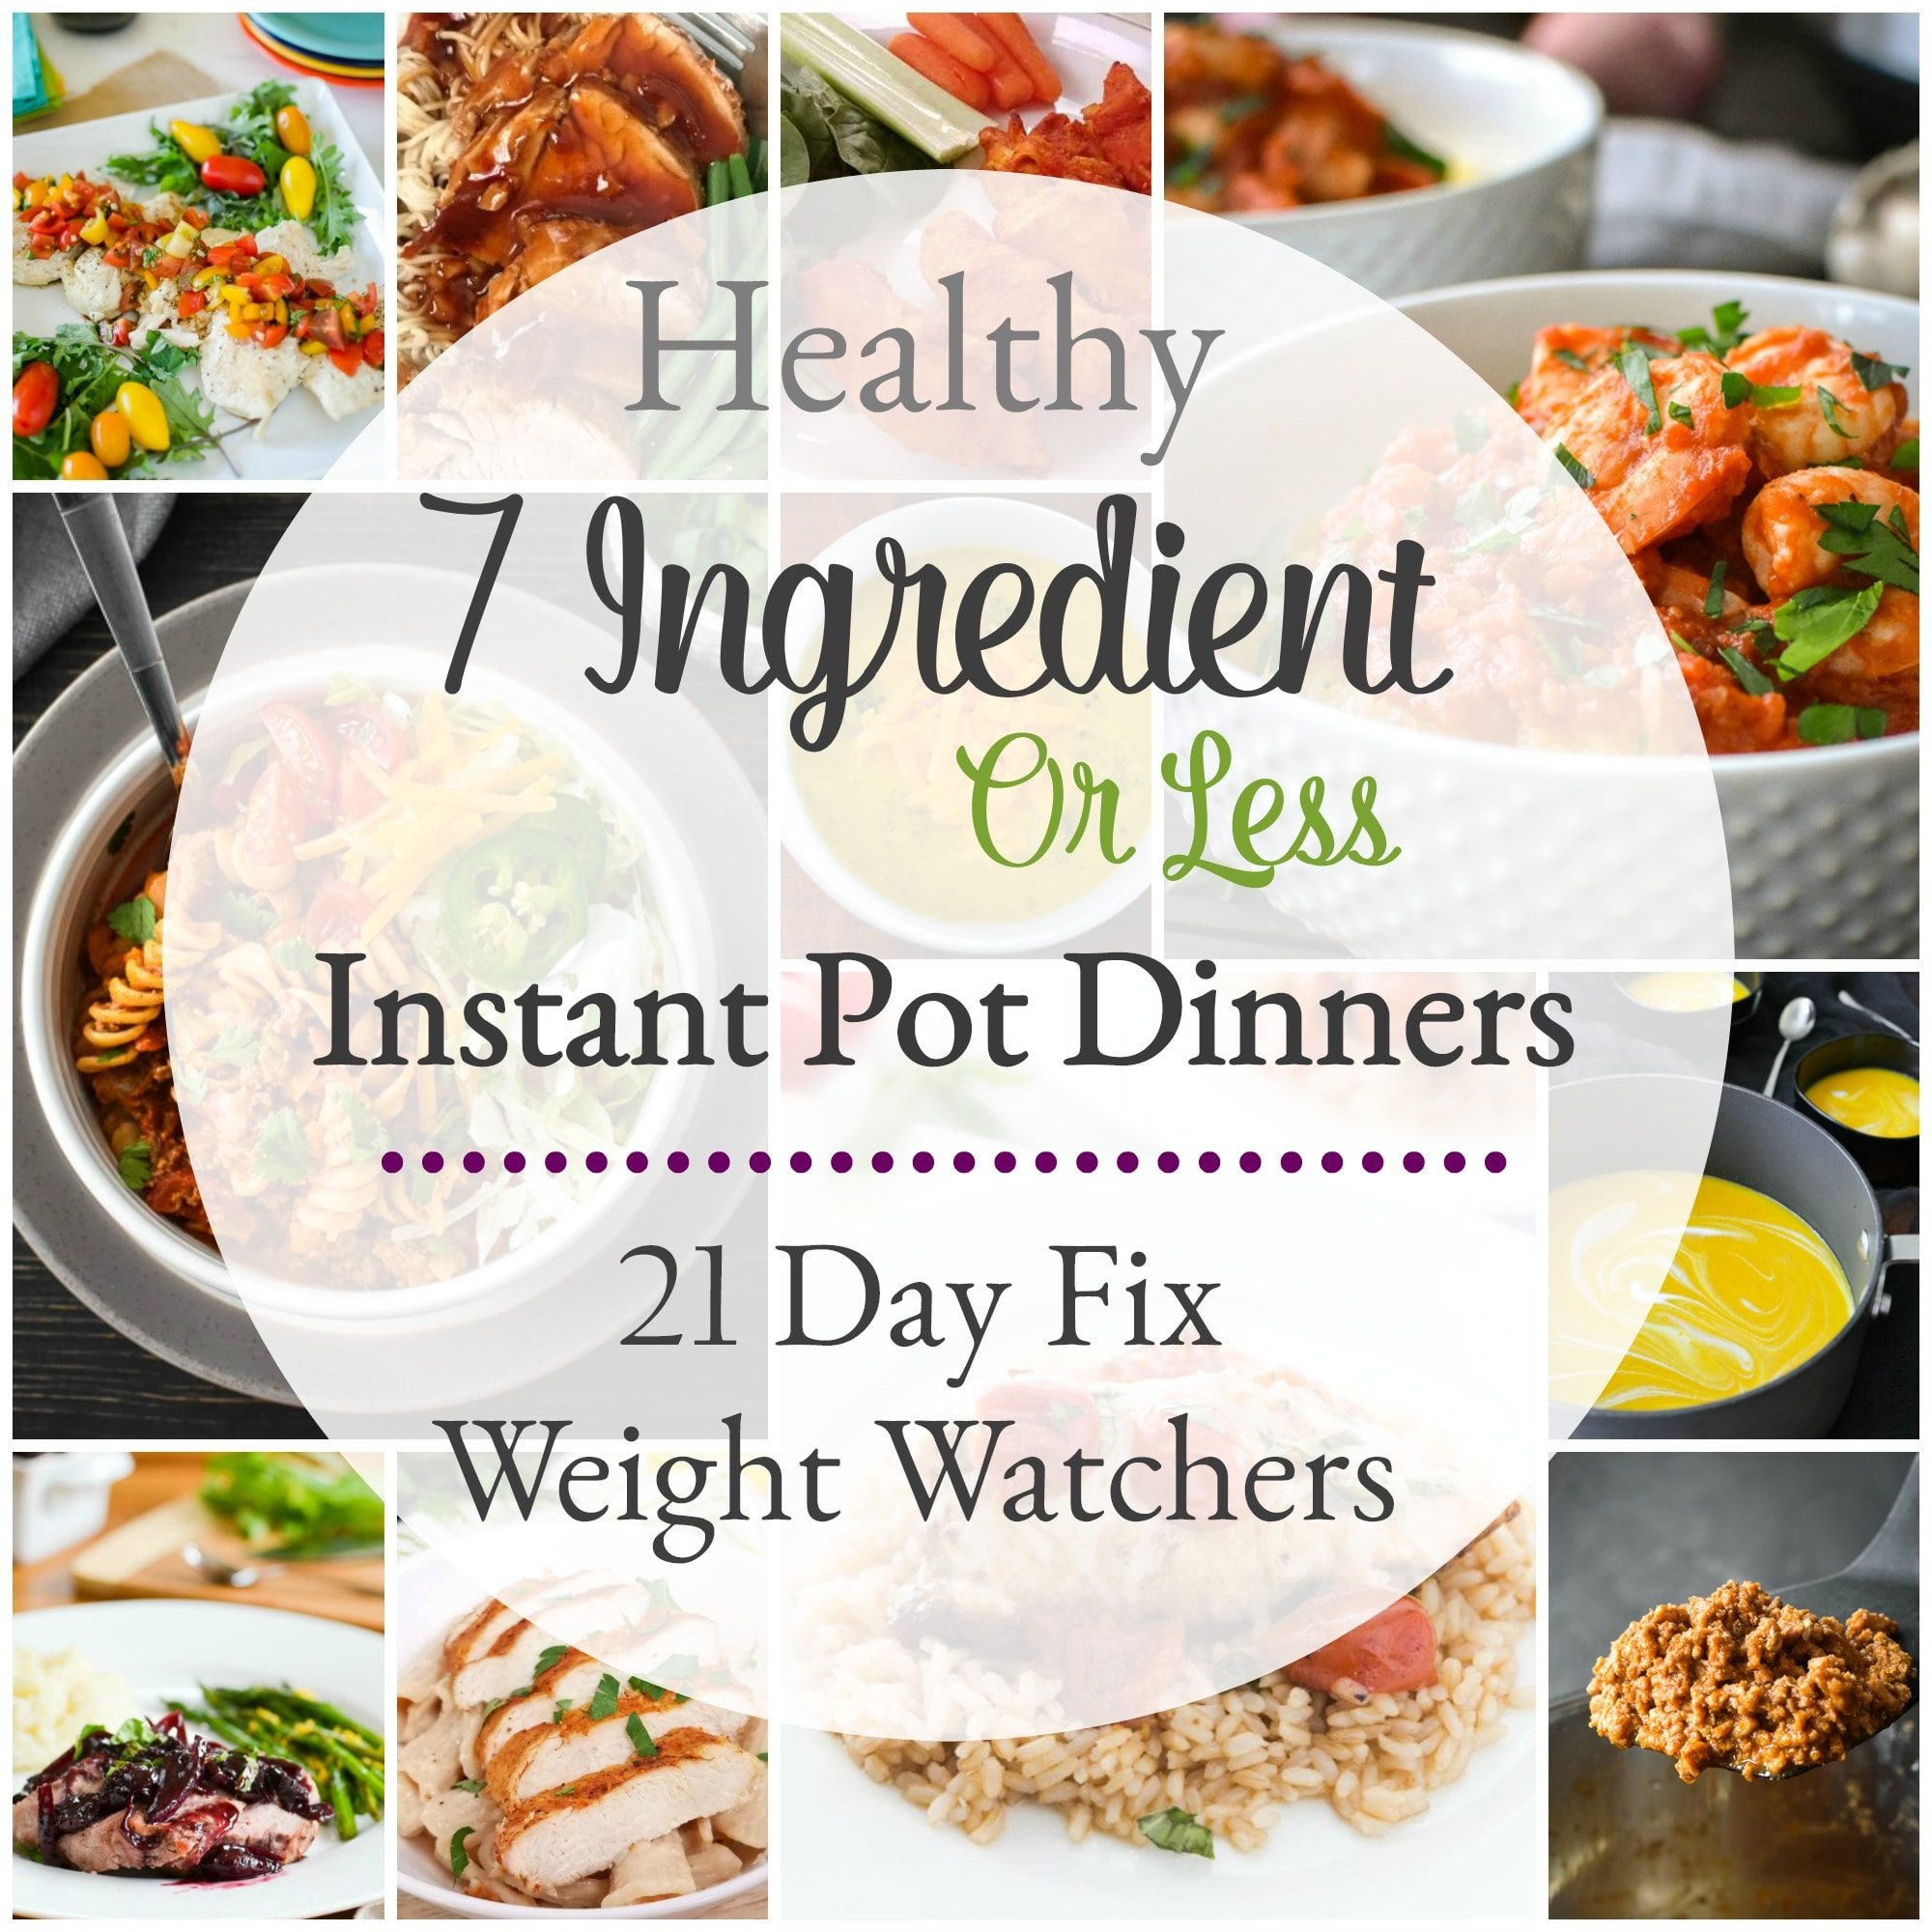 These 7-ingredient-or-less healthy Instant Pot dinner recipes are all simple and delicious! Each has 21 Day Fix counts and Weight Watchers Freestyle points. #portionfix #21dayfix #weightwatchers #2bmindset #budgetfriendly #kidfriendly #quickdinner #instantpot #healthyinstantpot #healthy #dinner #healthydinner #mealprep #mealplan #mealplanning